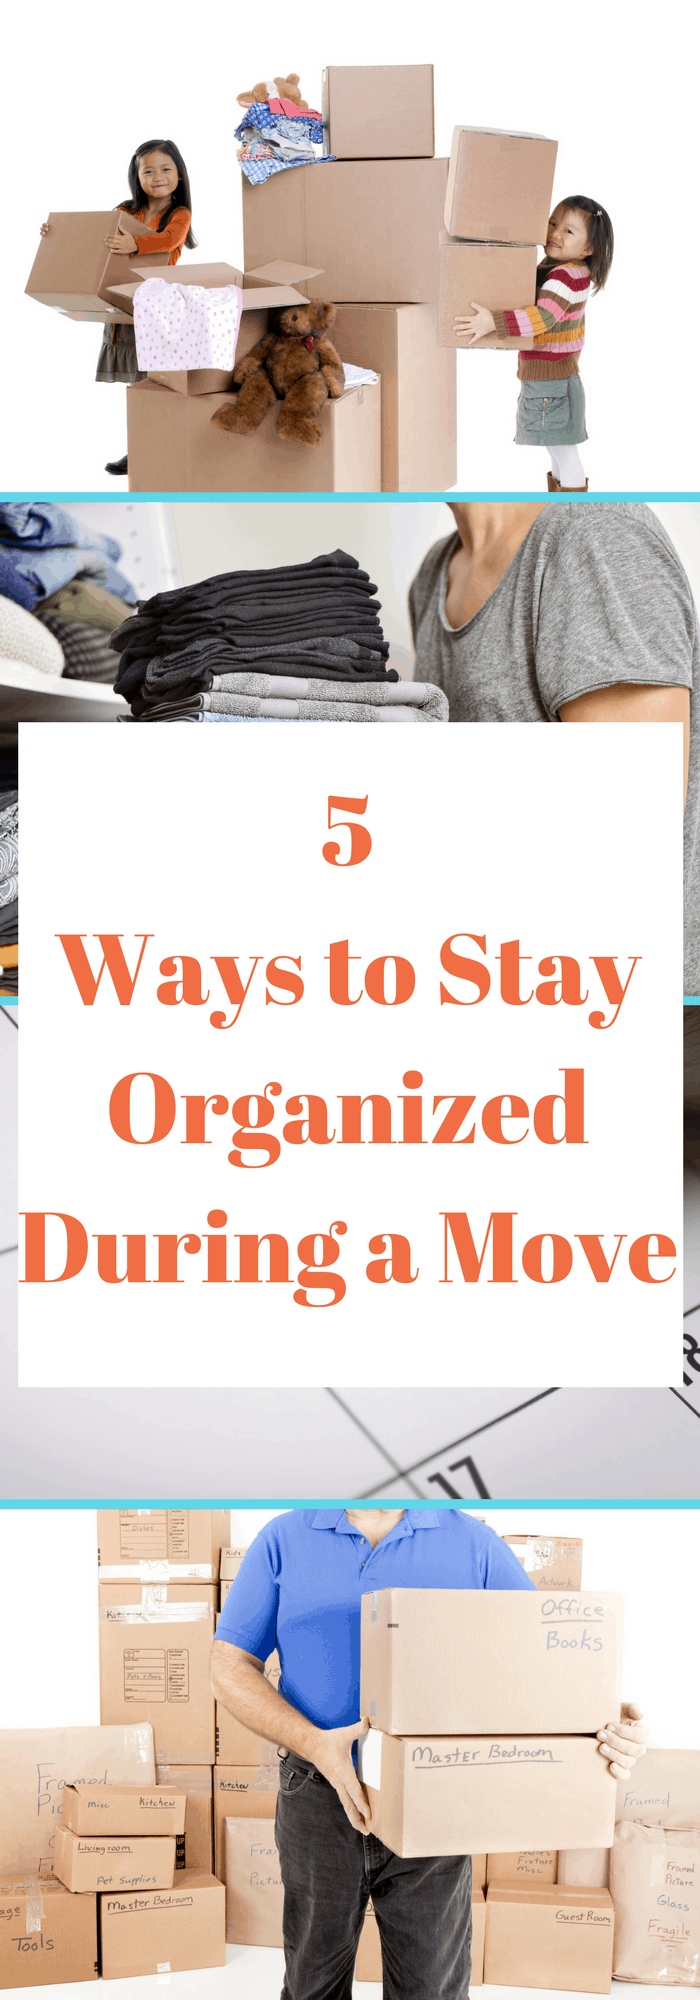 Moving soon? These are great ideas to do it efficiently and stay organized!